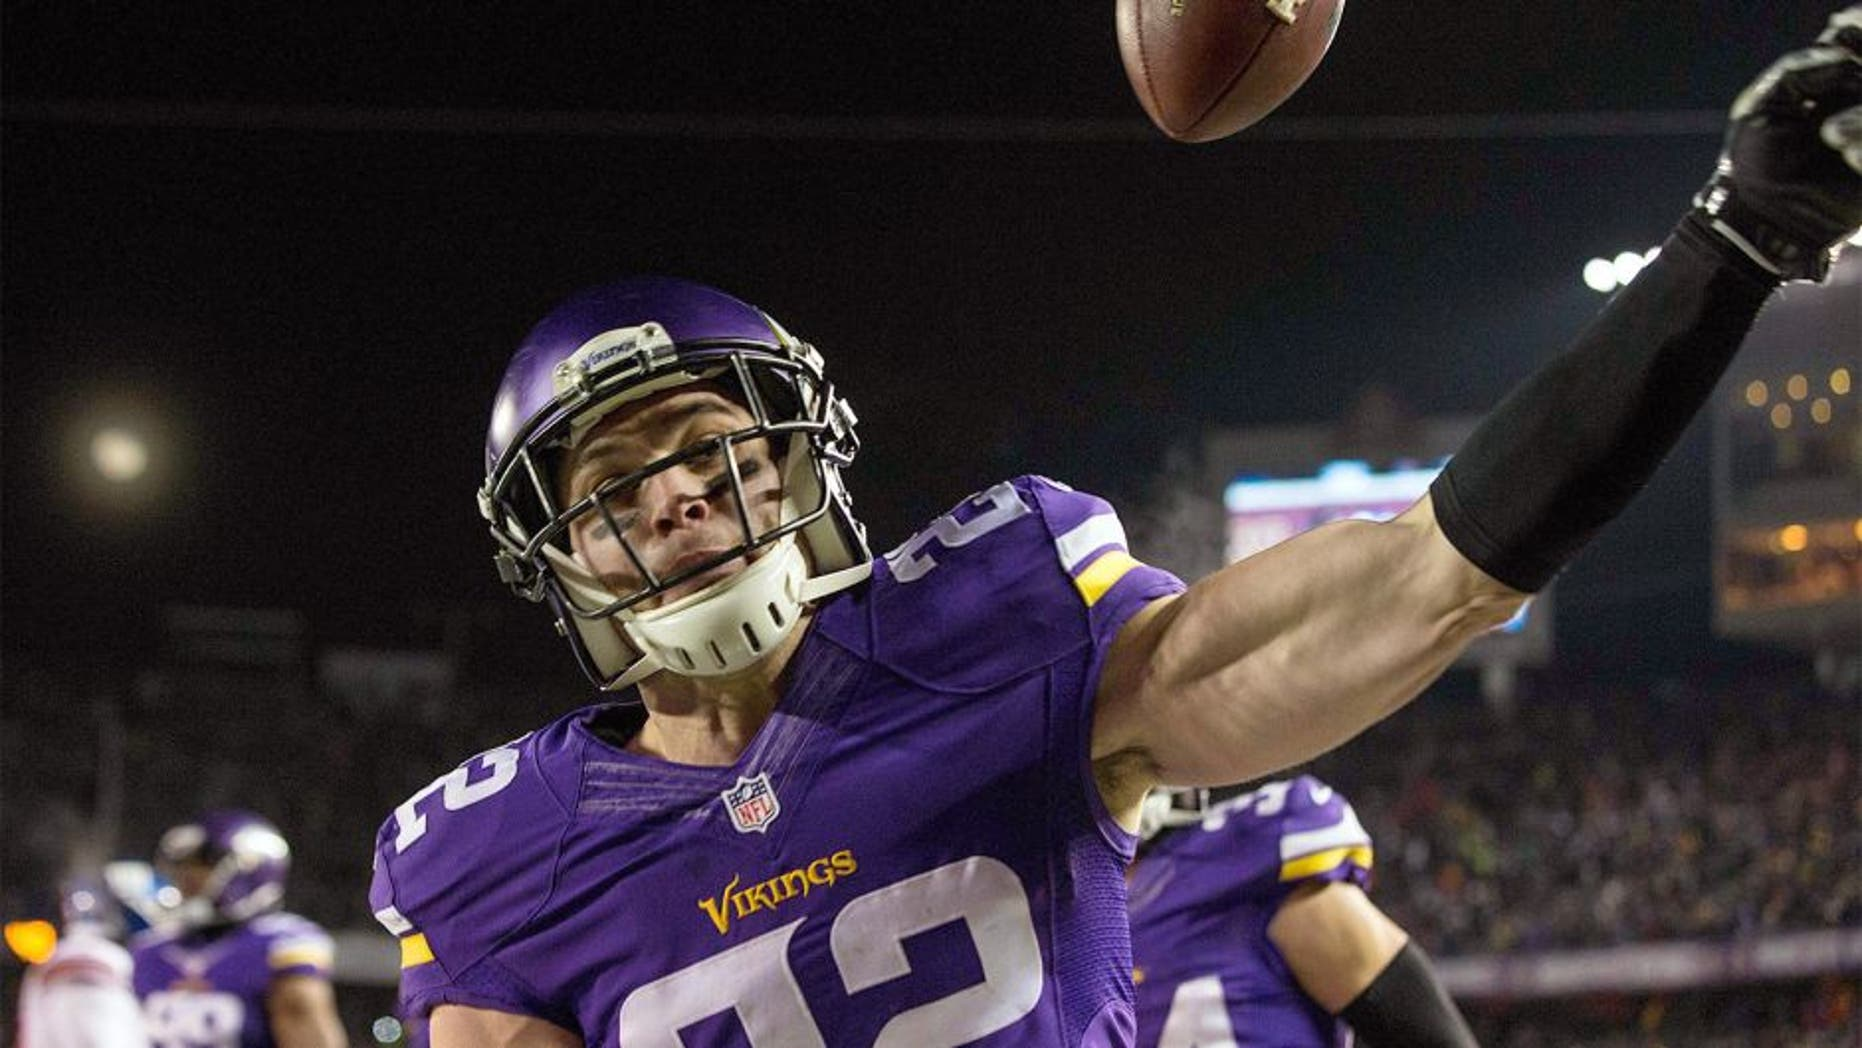 Dec 27, 2015; Minneapolis, MN, USA; Minnesota Vikings safety Harrison Smith (22) celebrates his interception for a touchdown during the second quarter against the New York Giants at TCF Bank Stadium. Mandatory Credit: Brace Hemmelgarn-USA TODAY Sports